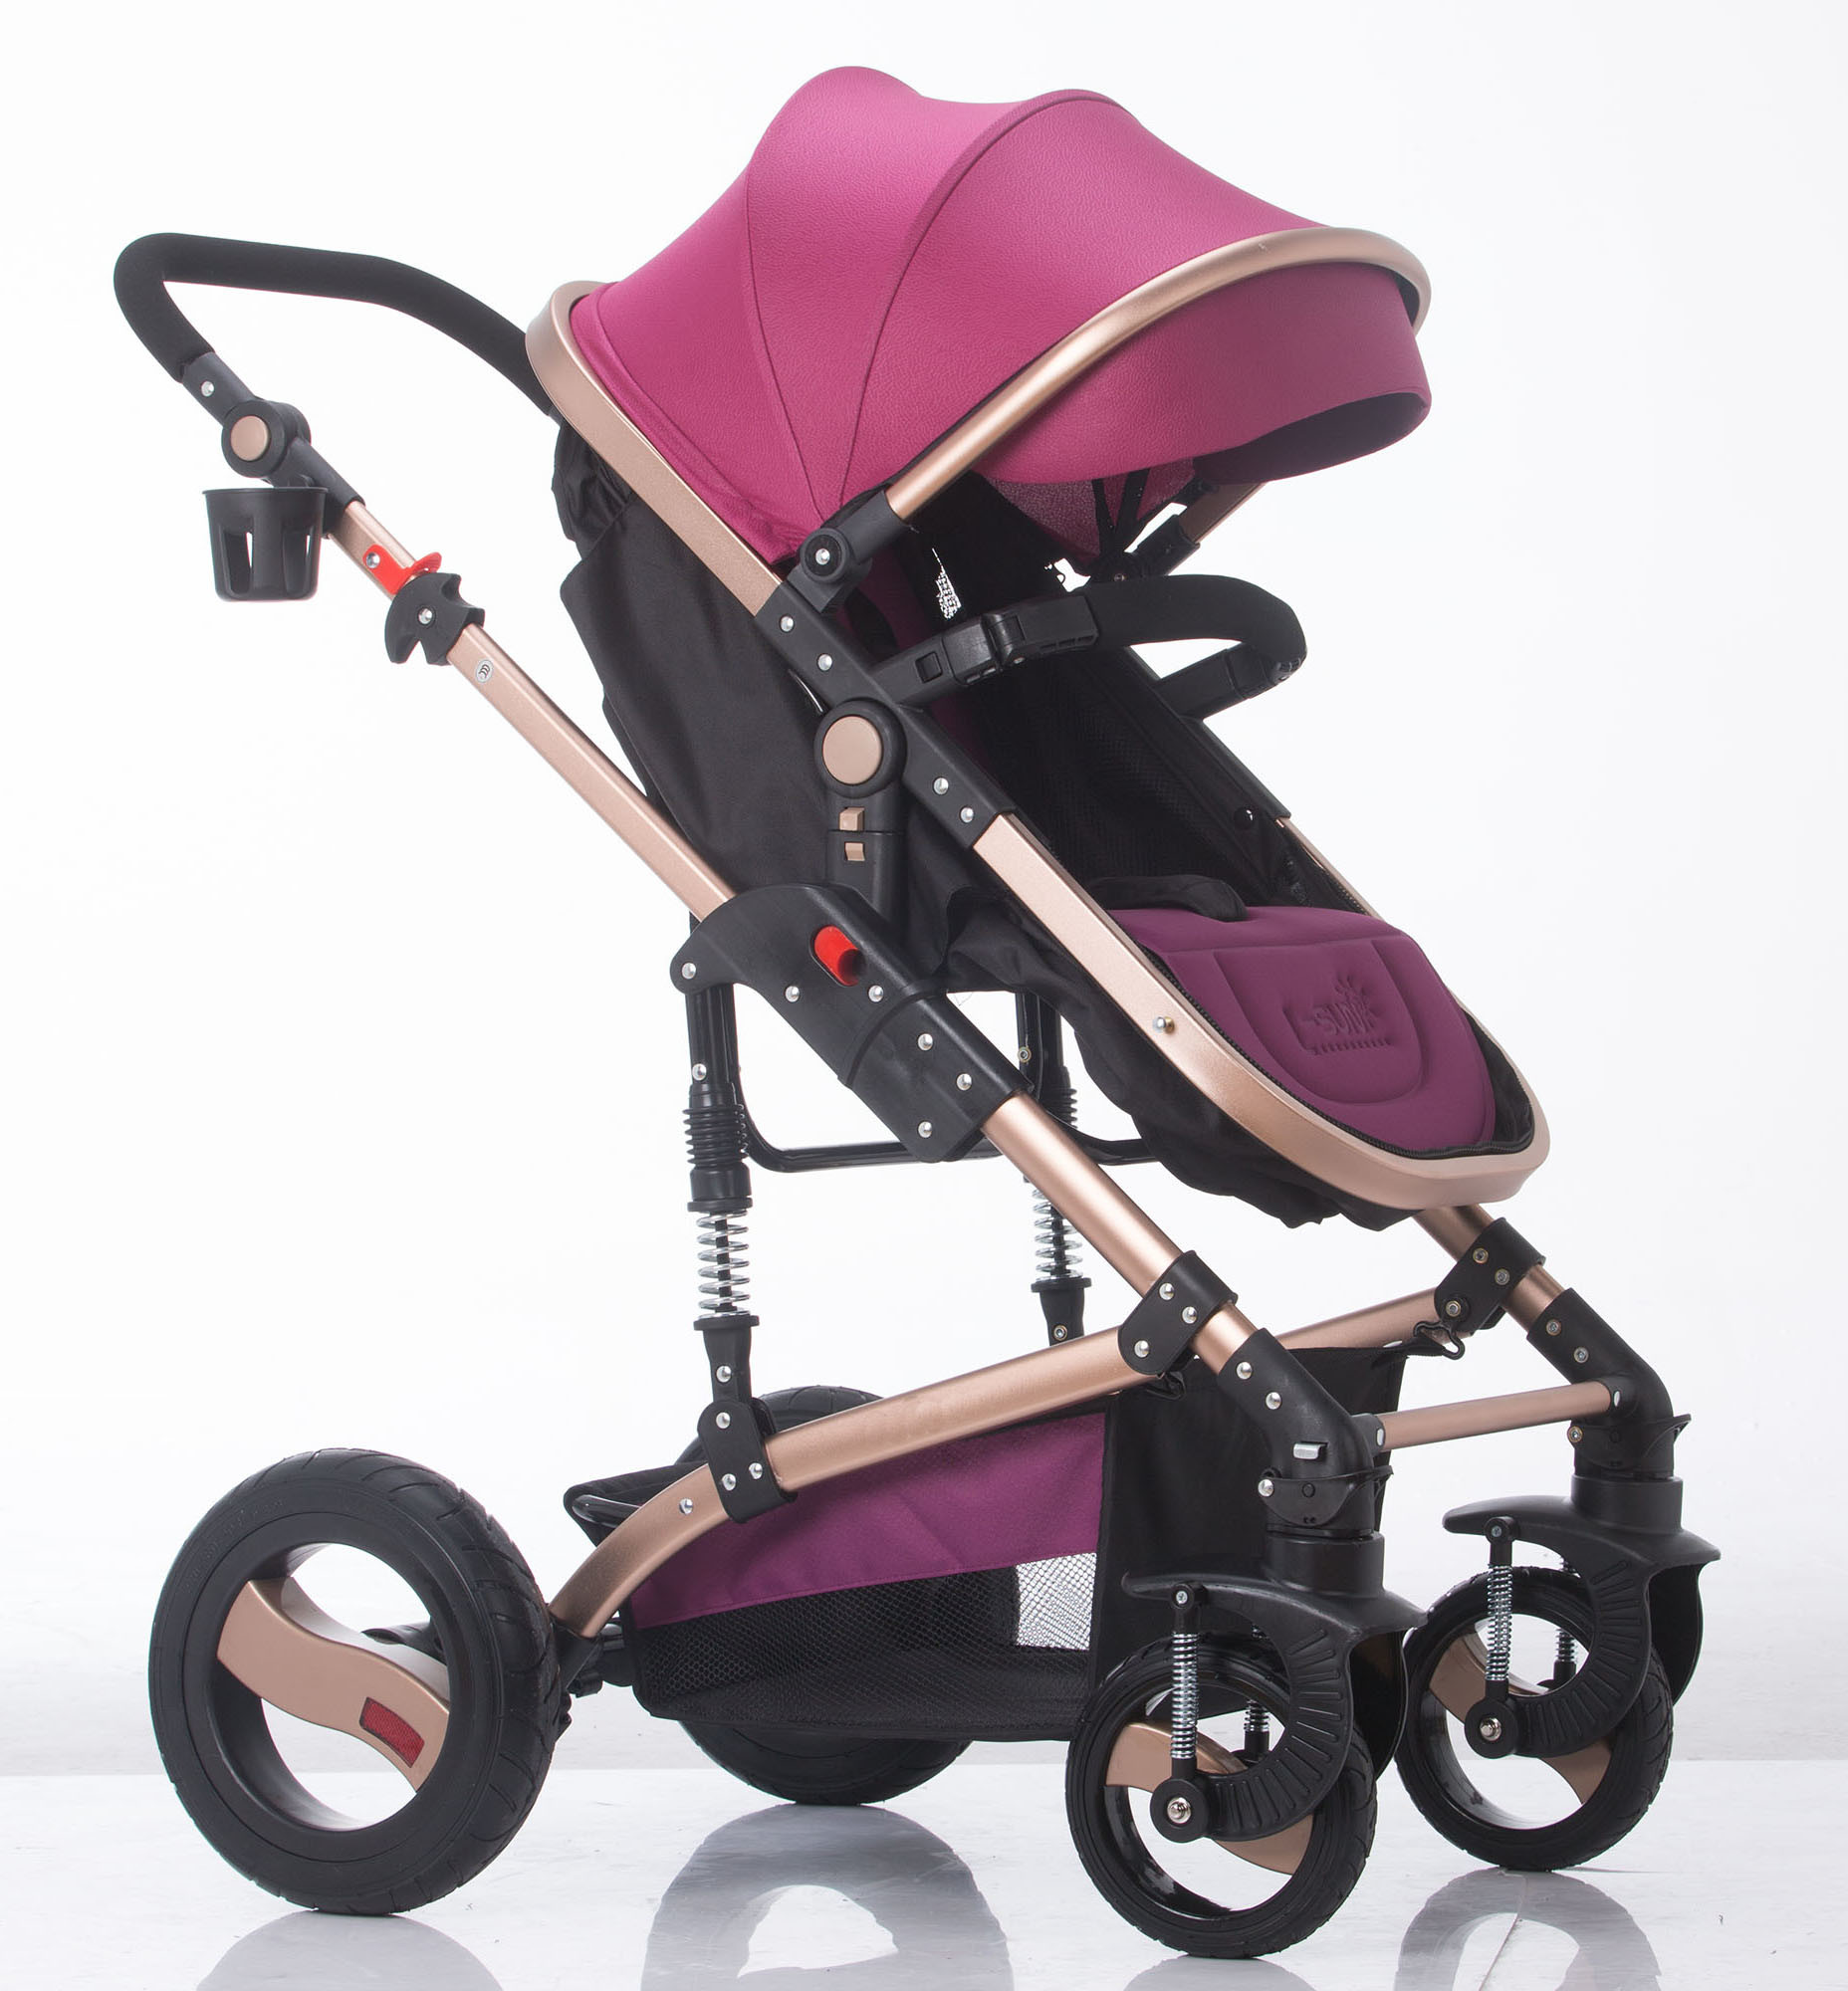 Carriage Type Strollers Hot Item New Design European Luxury Fold Baby Carriage With Ce Certificate